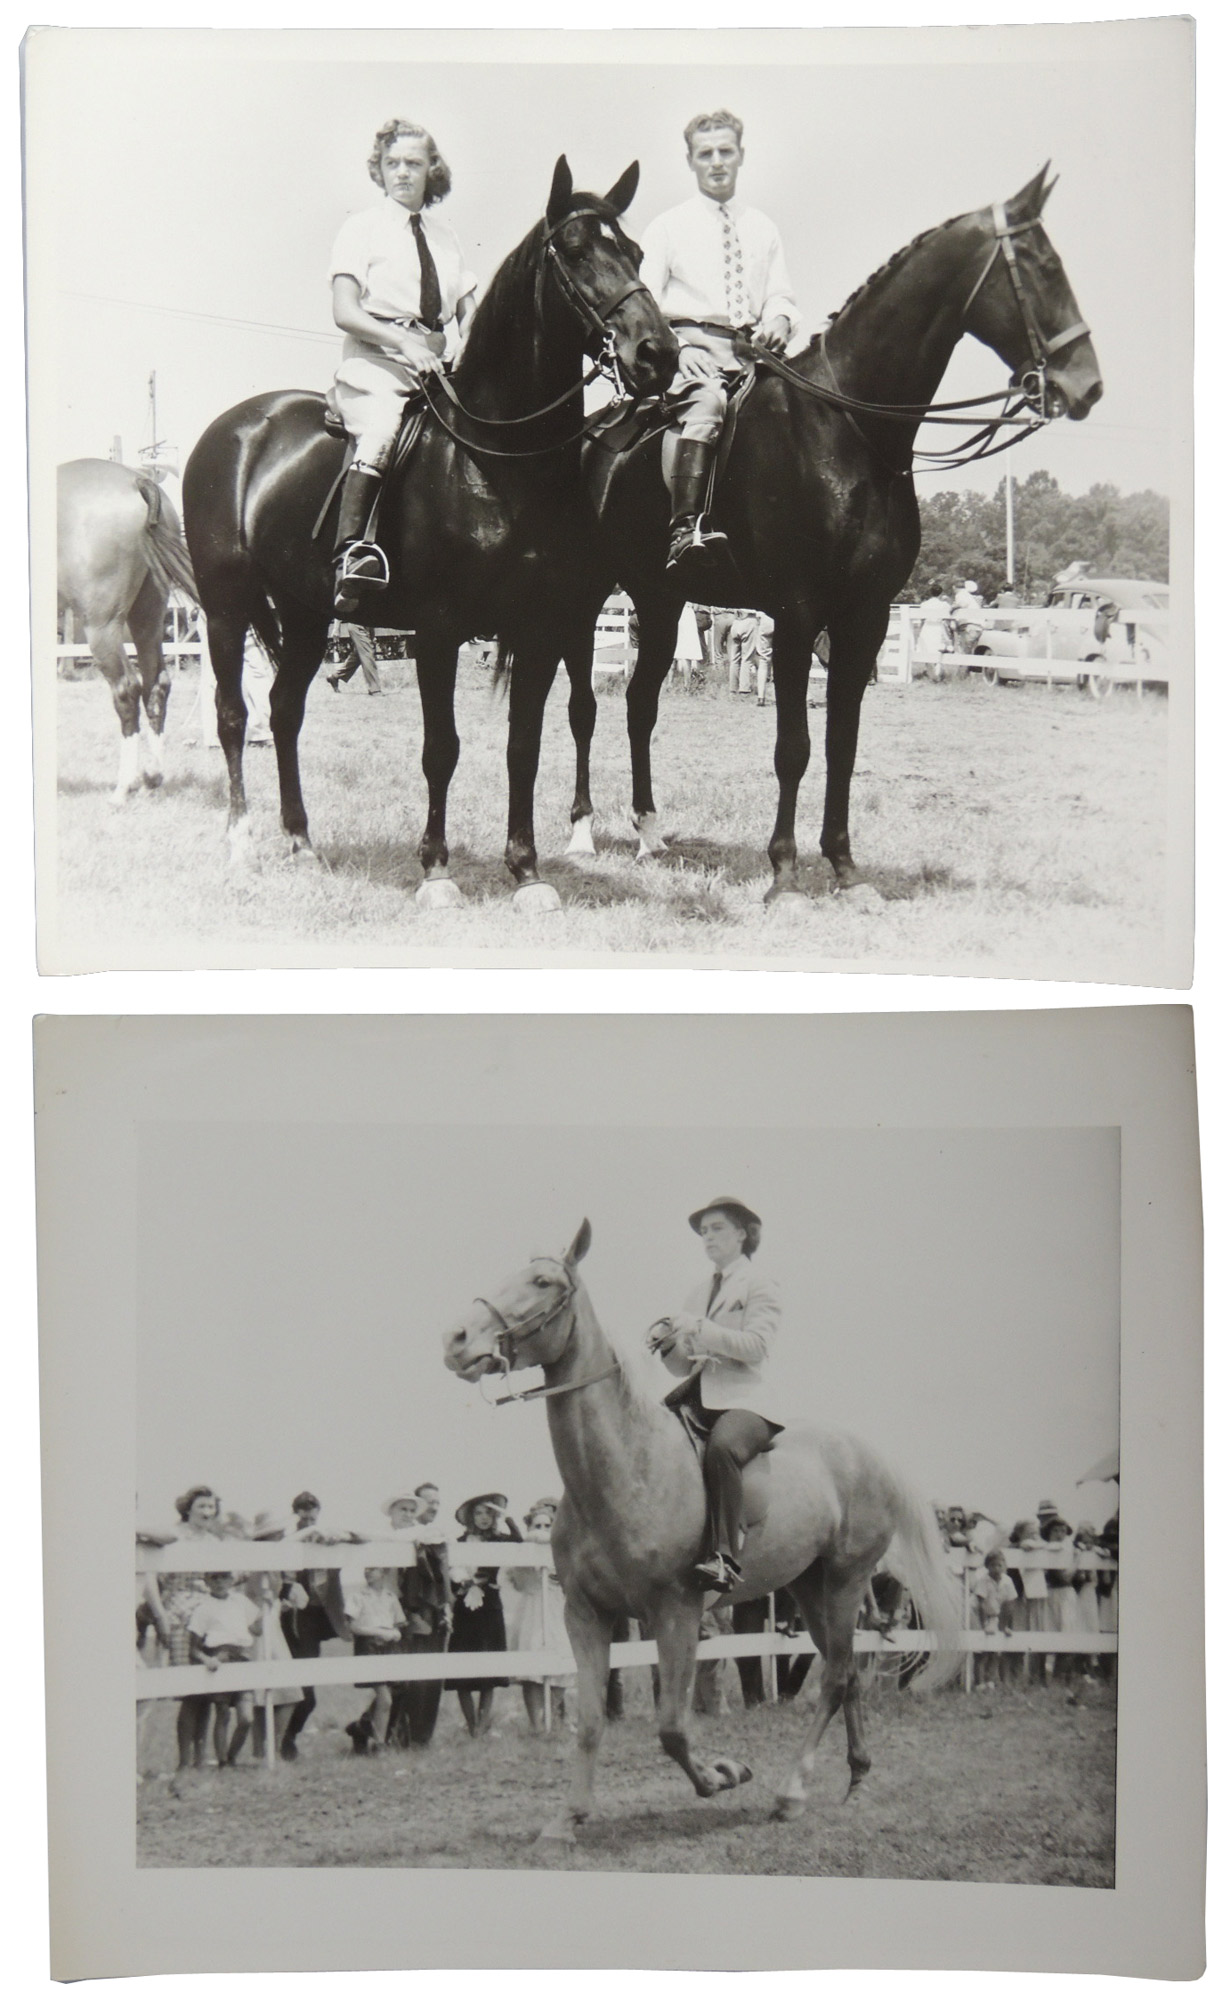 1940s Equestrian Photographic Collection